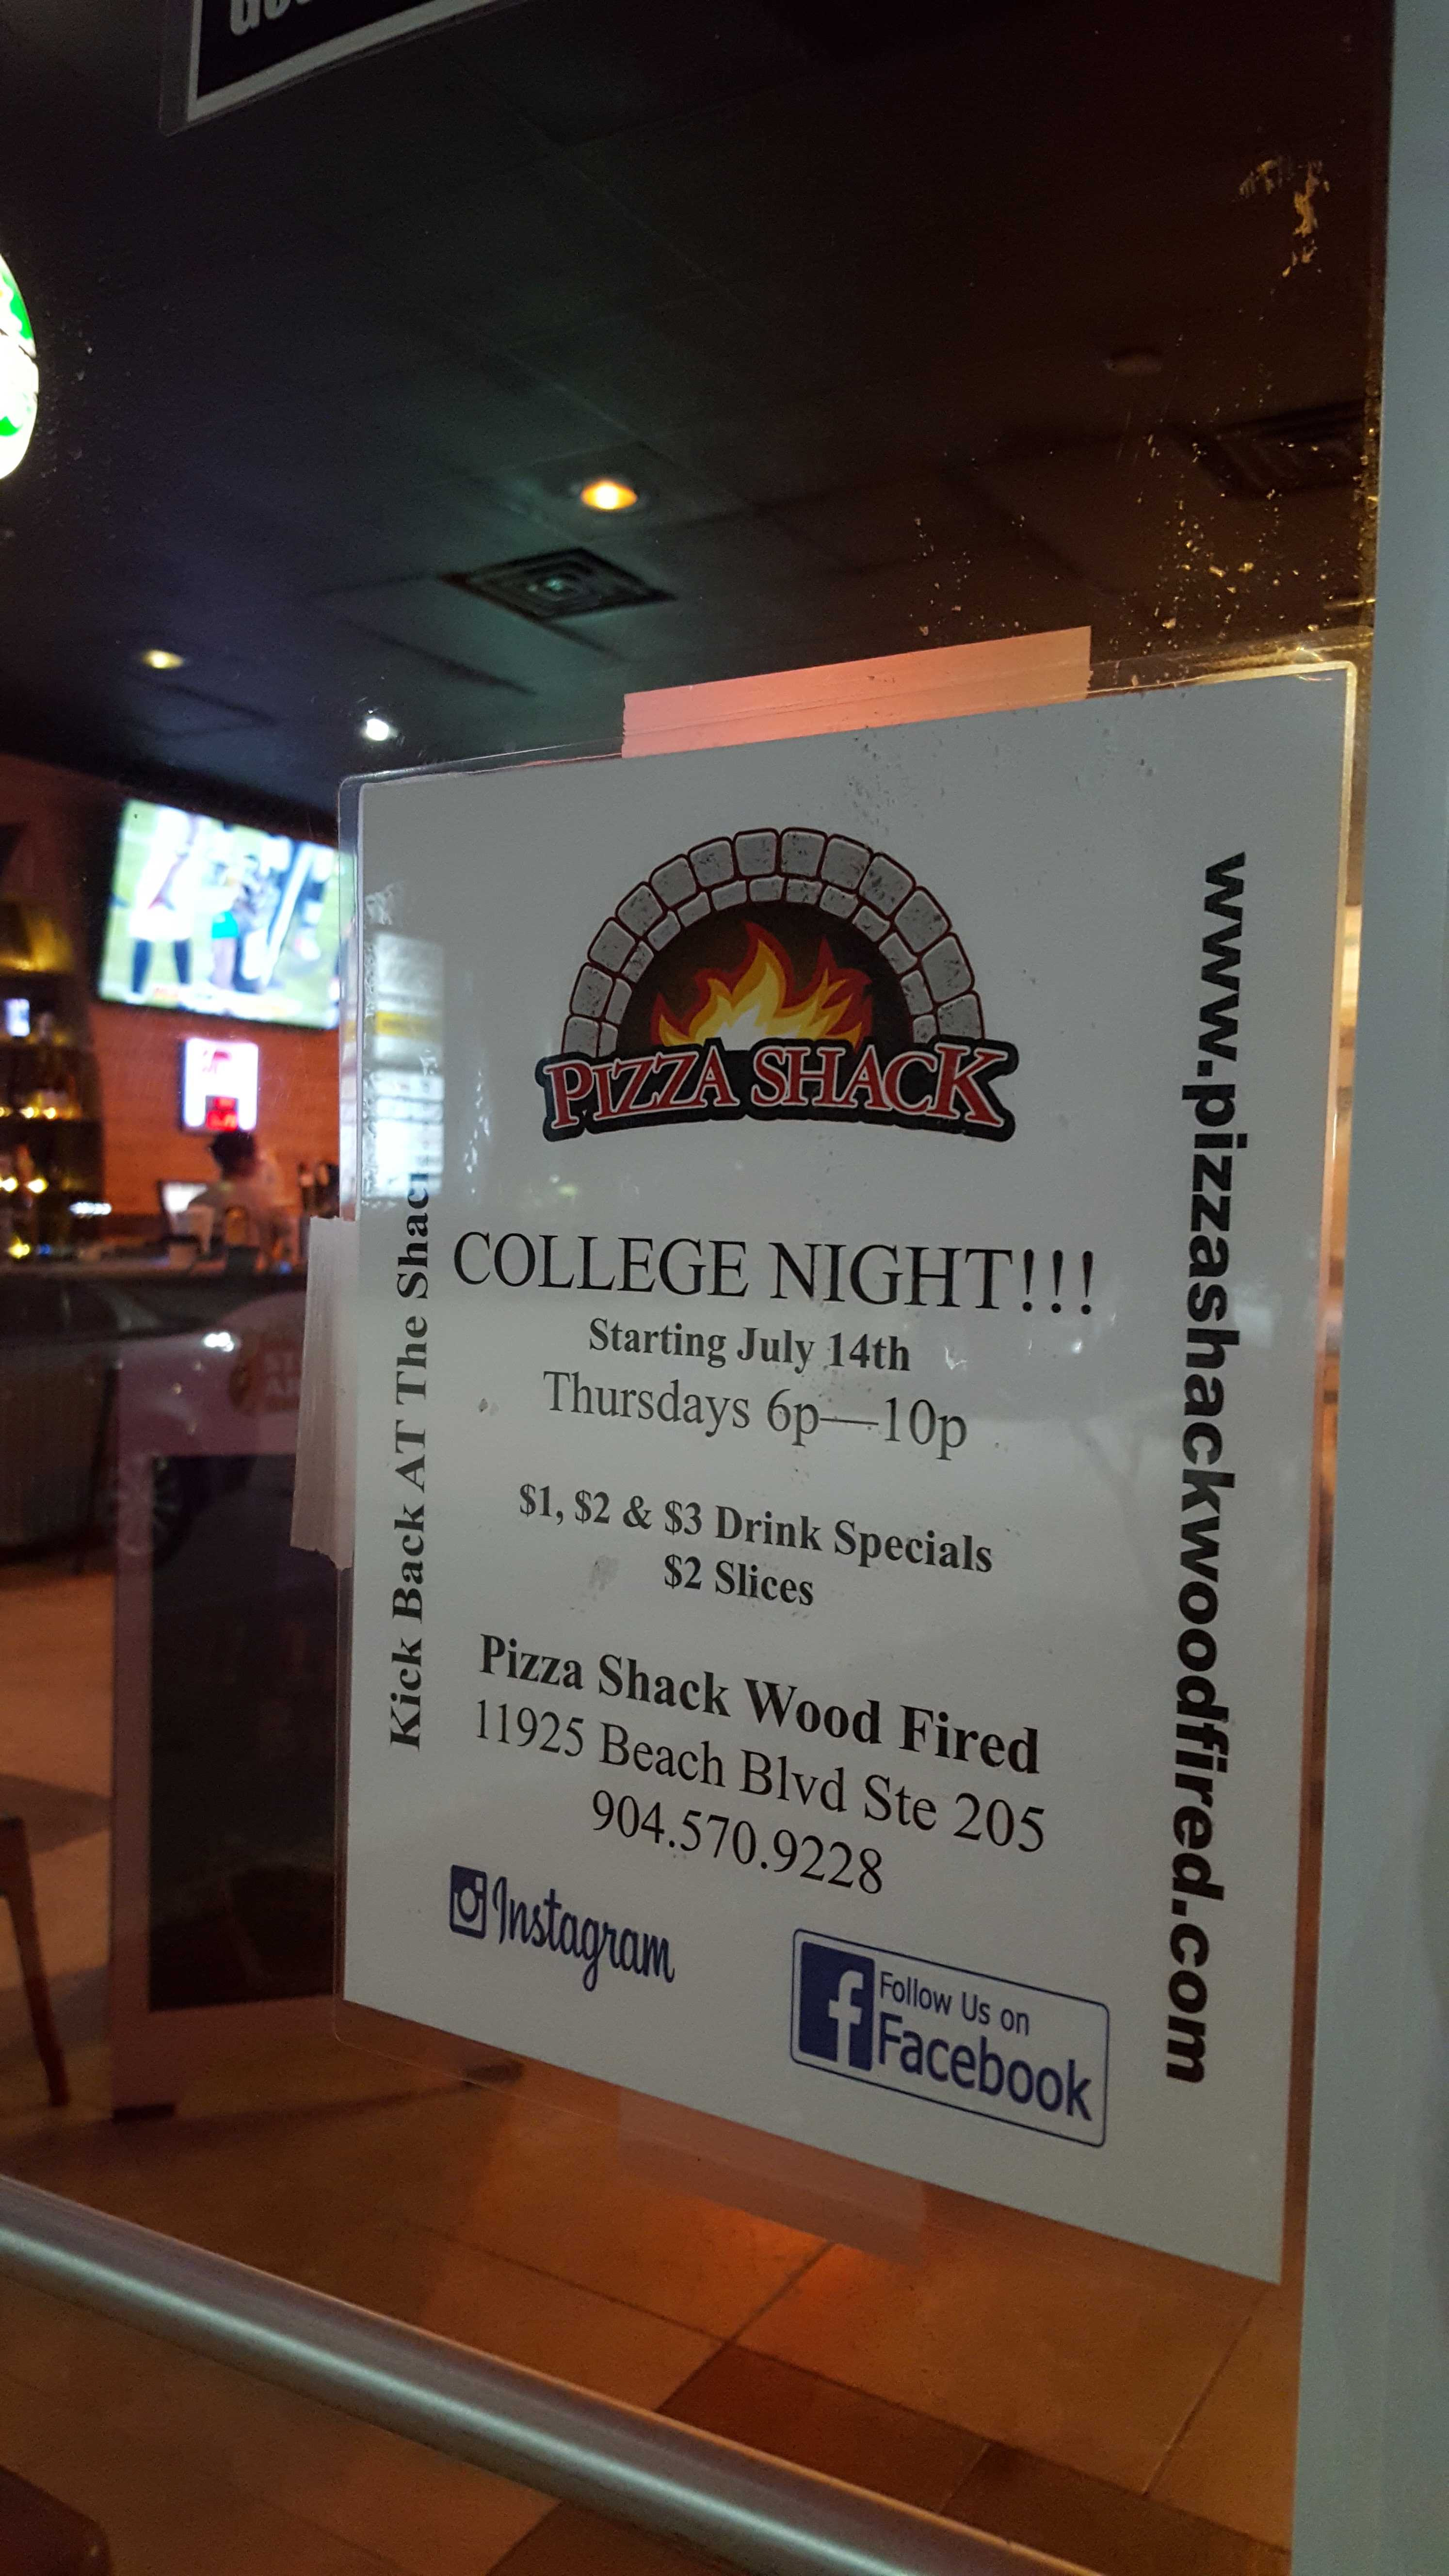 Pizza Shack offers discounted drinks and pizza for college night every Thursday. Photo by Courtney Stringfellow